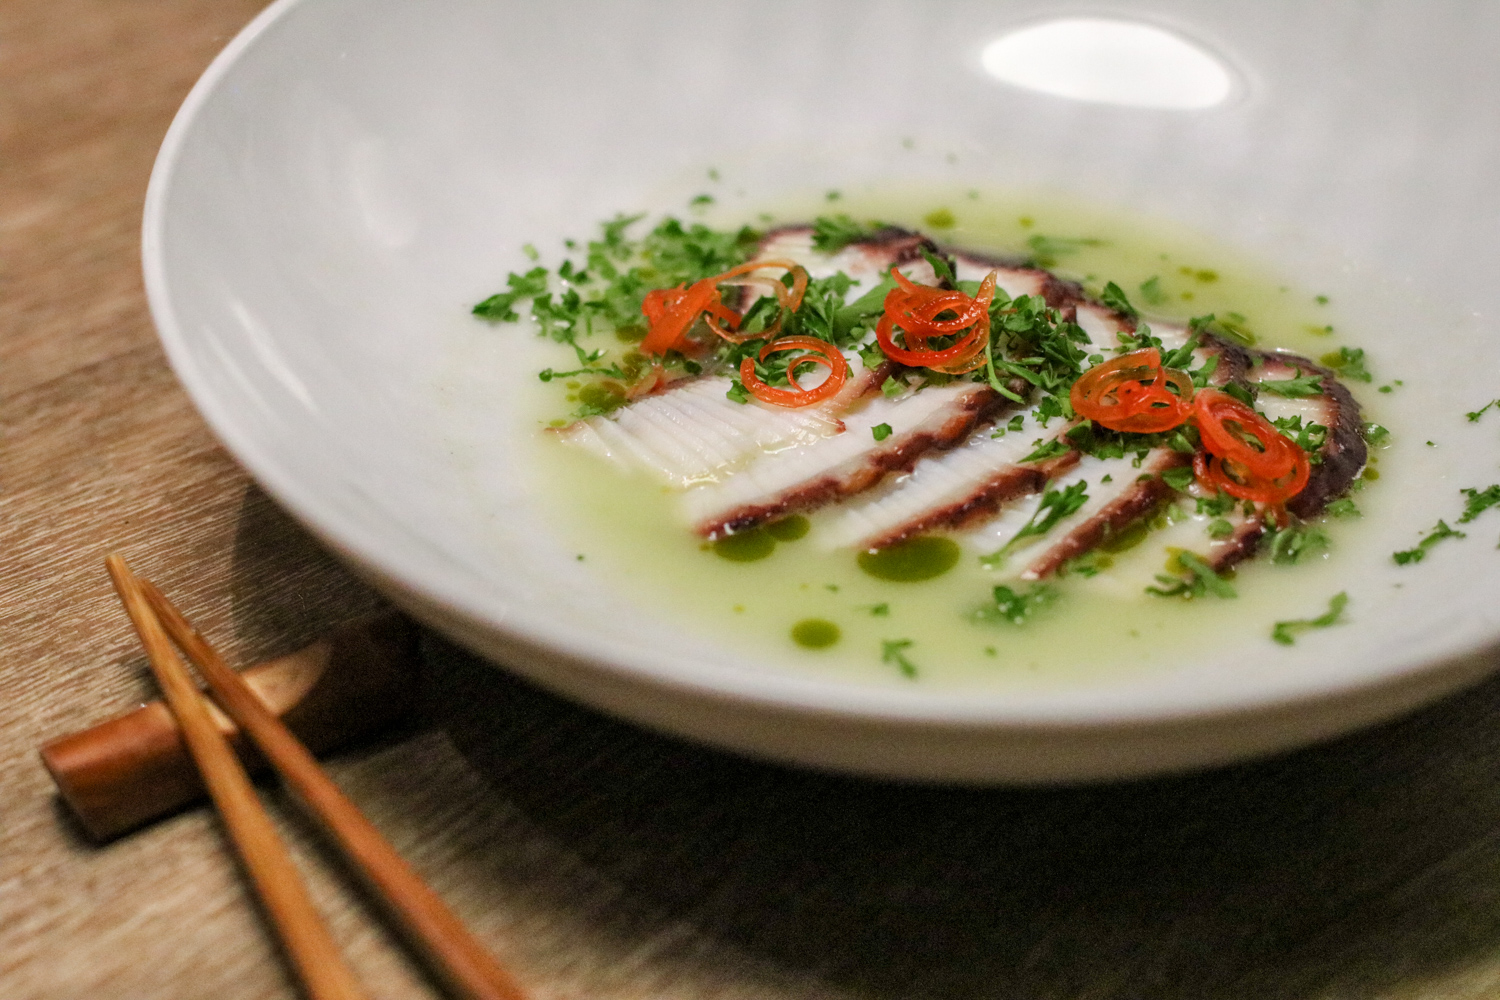 Tako Wasabi with octopus, fresno peppers, parsley and citrus wasabi